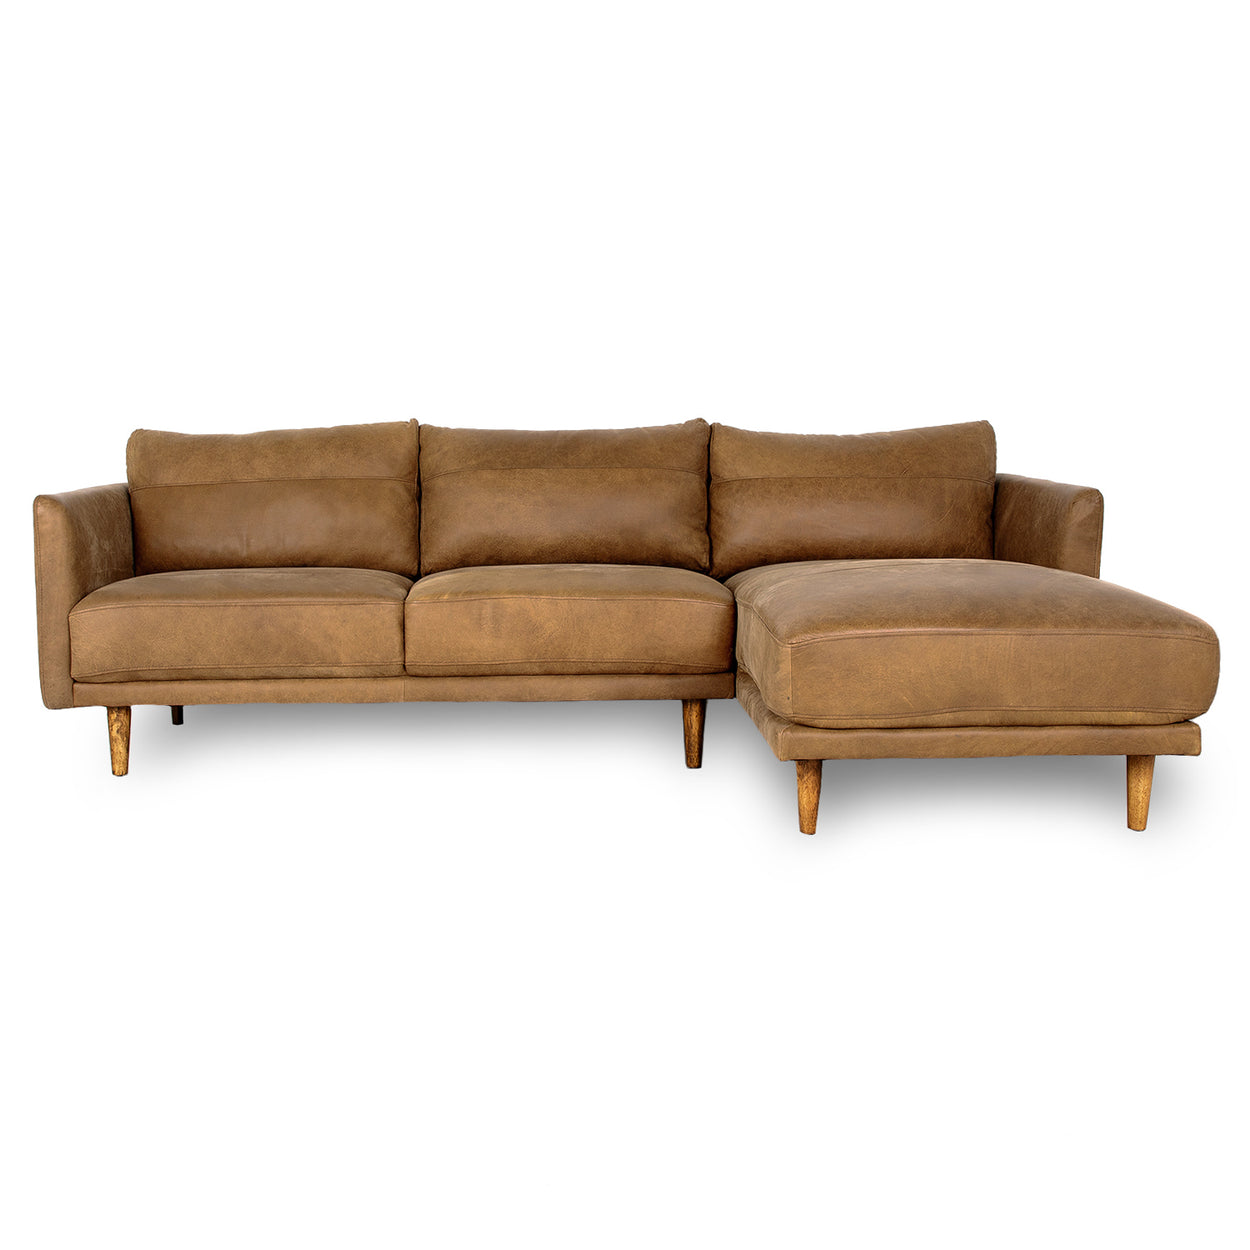 JORDIE LEATHER - 3 Seat, Right Side Facing Modular Sofa